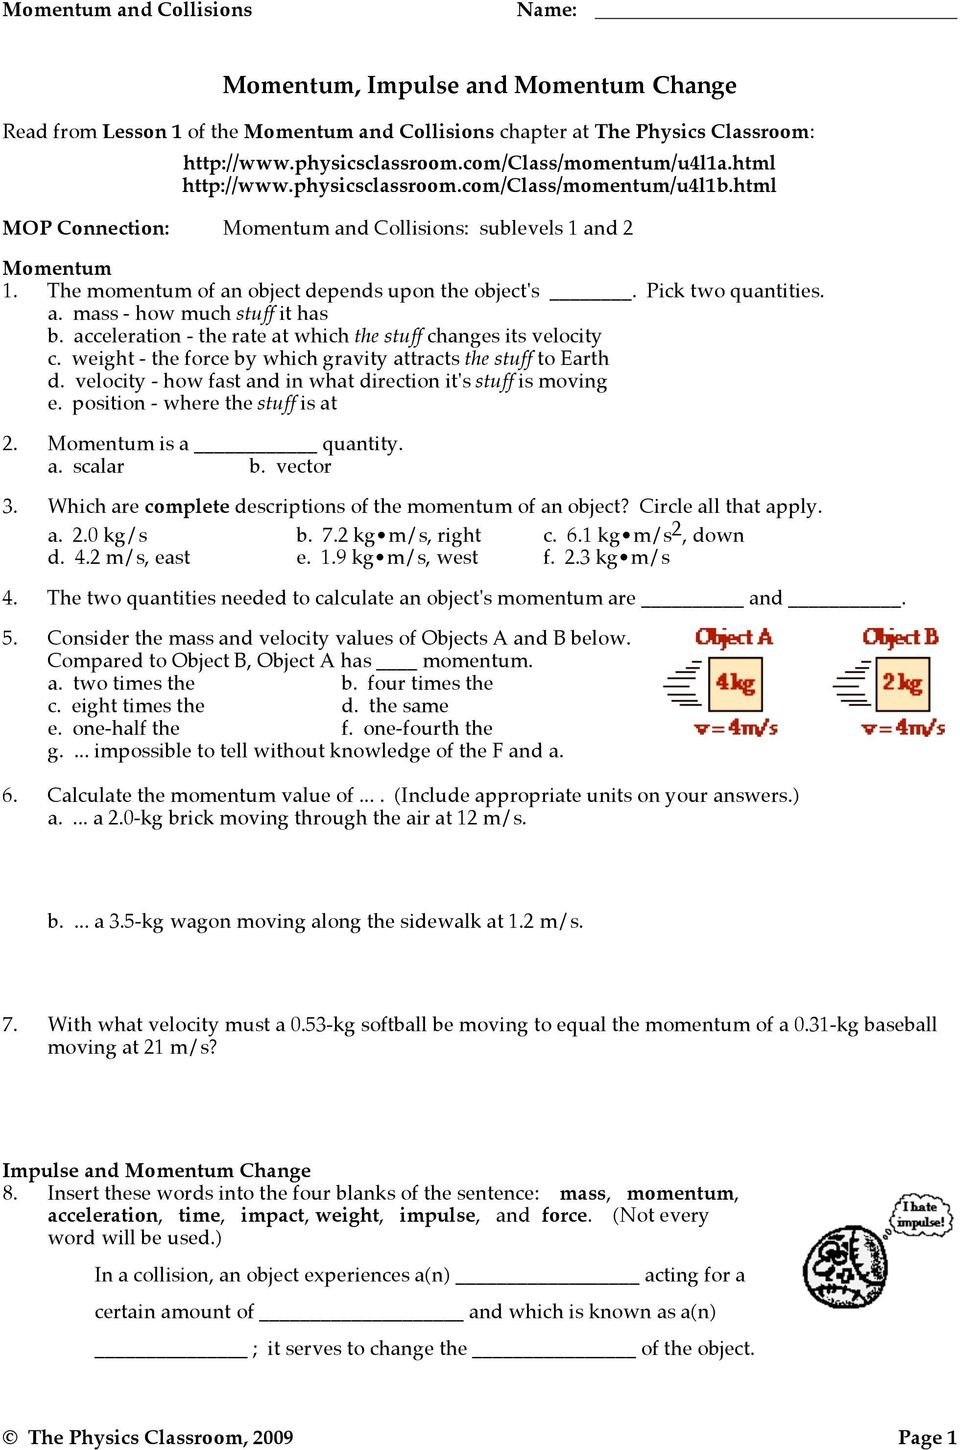 Momentum Impulse And Momentum Change Worksheet Answers Physics Intended For Momentum Worksheet Answers